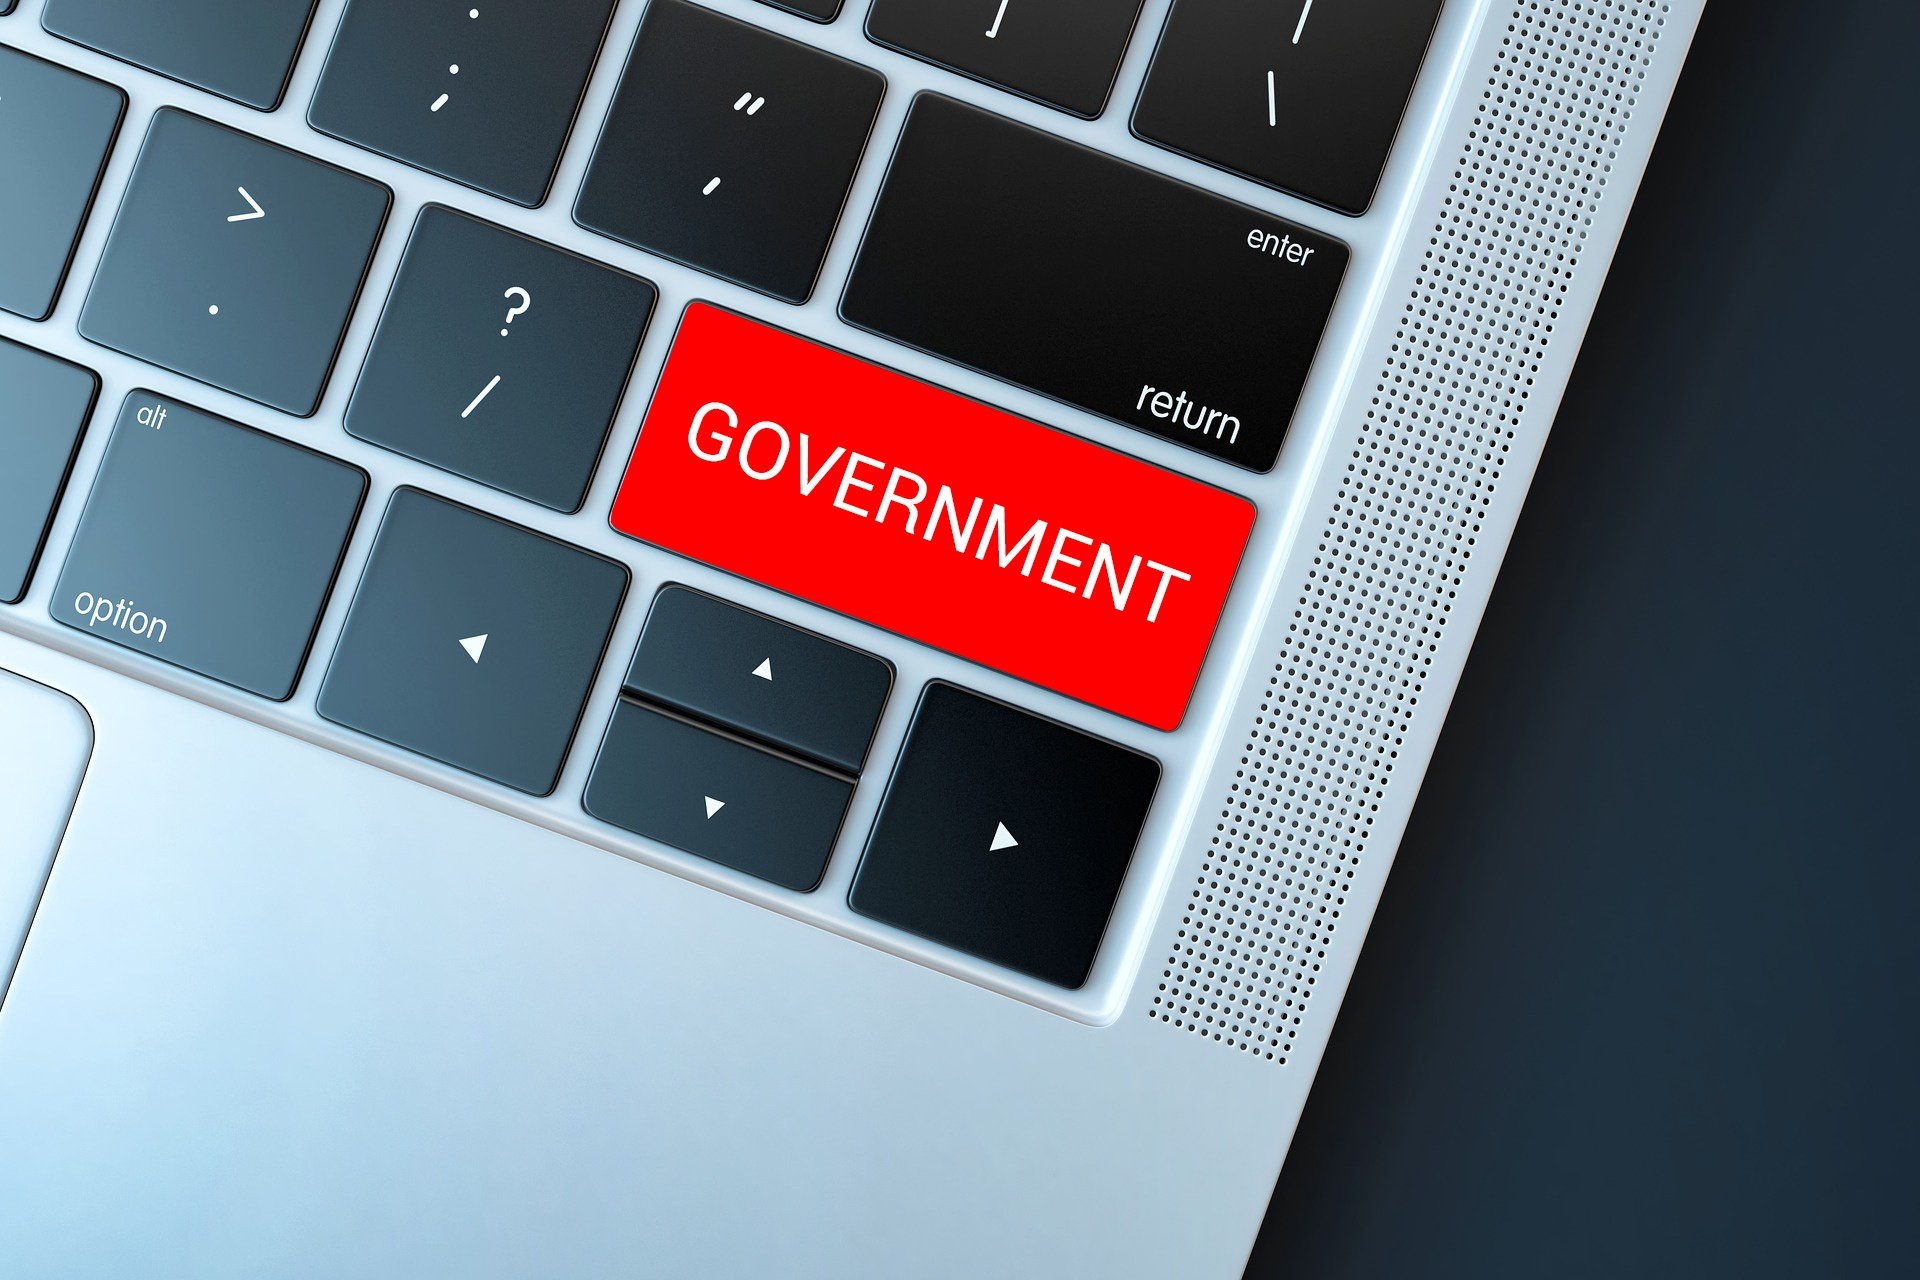 keyboard - red button - government